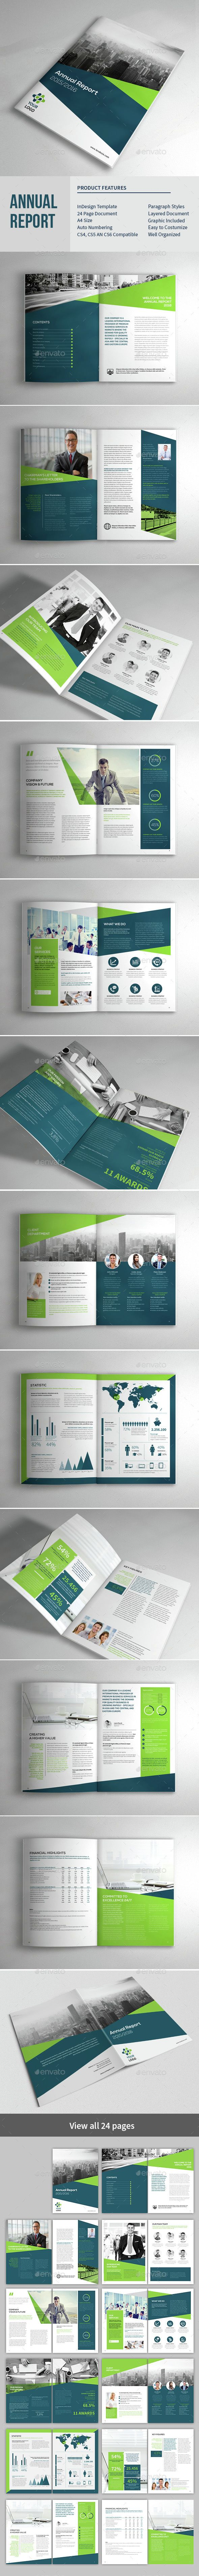 Fantastic 100 Greatest Resume Words Huge 101 Modern Resume Samples Square 1st Birthday Invitations Templates 2013 Resume Writing Trends Youthful 2014 Calendar Template Free Bright2014 Monthly Calendar Template 25  Best Ideas About Annual Report Design On Pinterest | Report ..